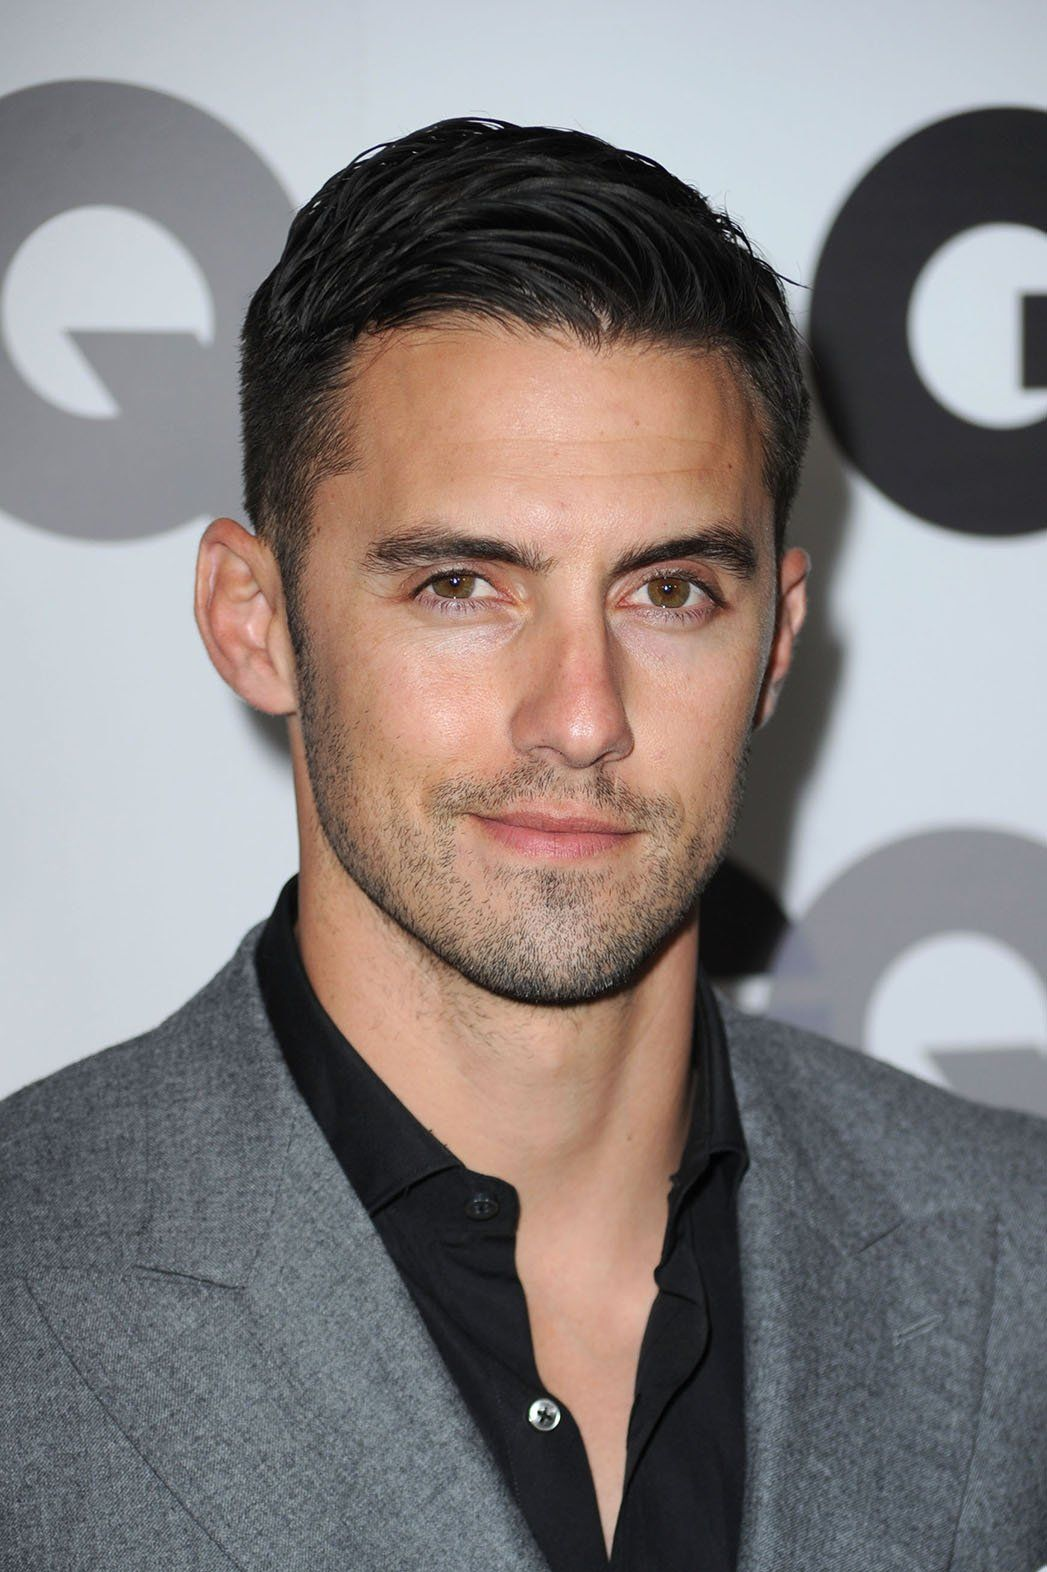 """'Gotham' Enlists Milo Ventimiglia for Recurring Arc. The 'Heroes' alum will play a serial killer known as """"the Ogre"""" on the Fox freshman drama."""